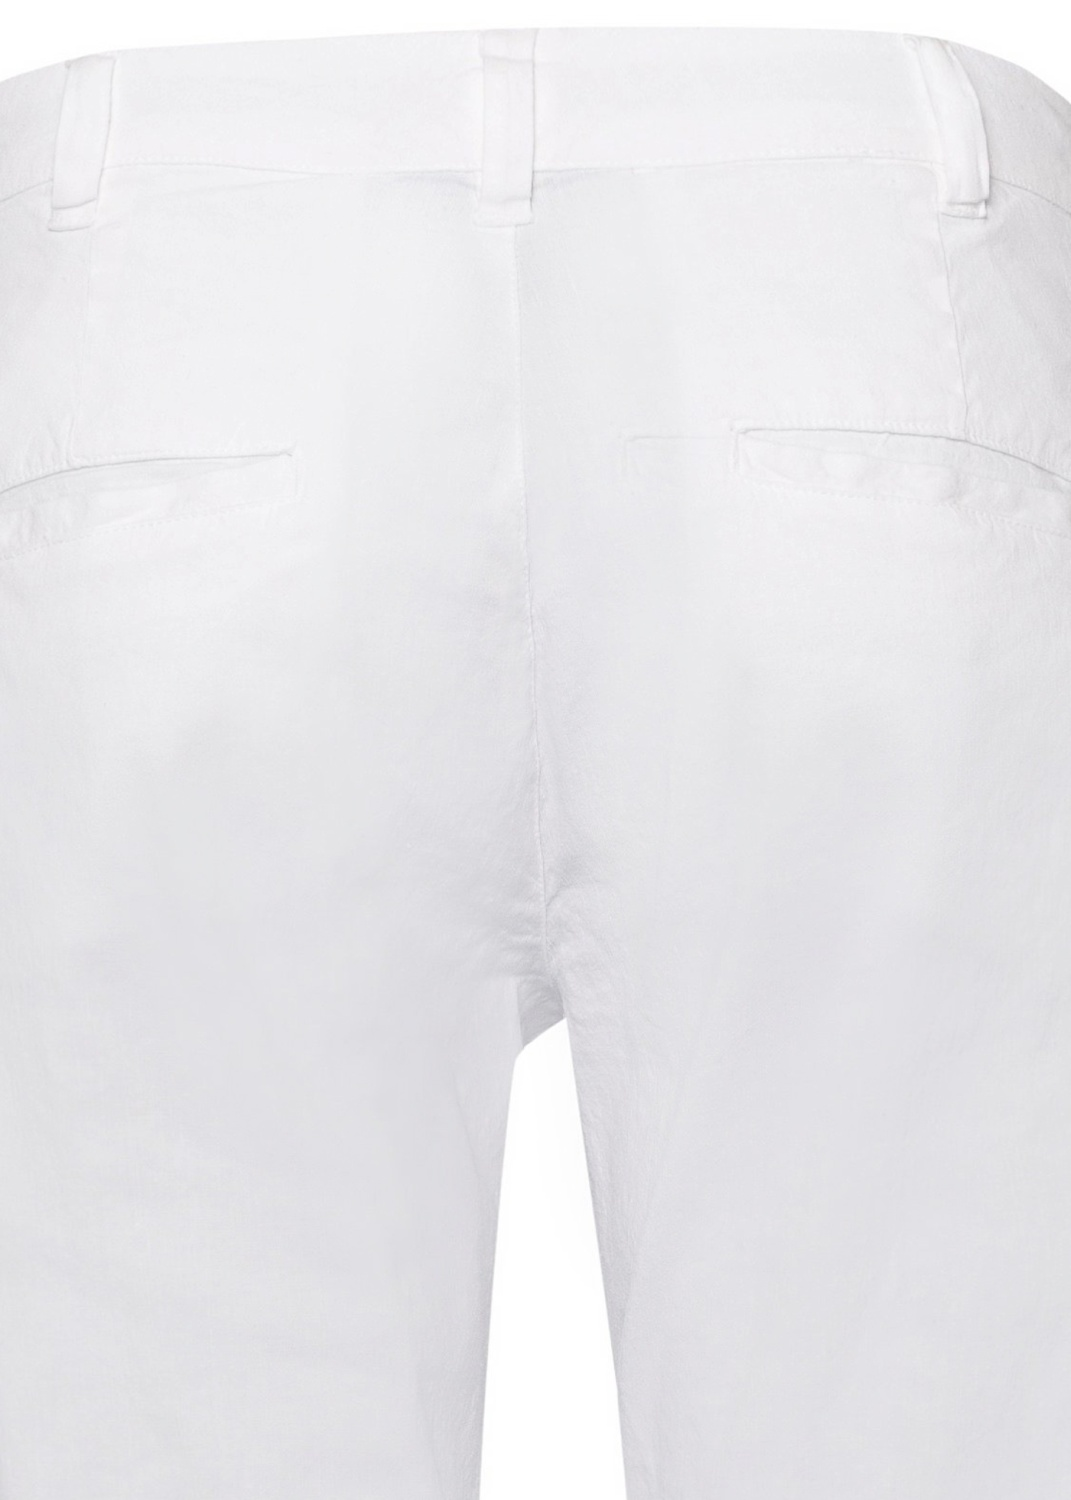 PANTALONE DONNA_TESS.ART10757005997 GHIBLY PPT IRR S image number 3